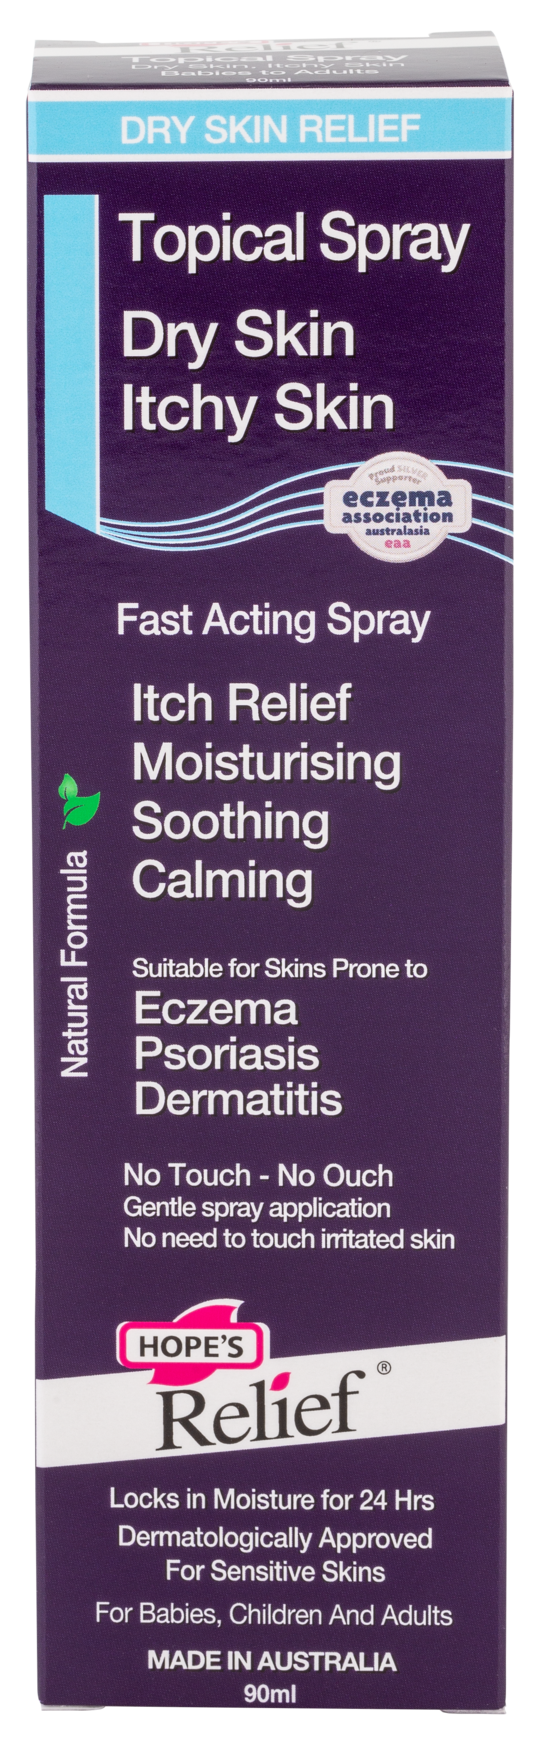 Hopes Relief Topical Spray - Natural Skin Hydration for Dry Skin